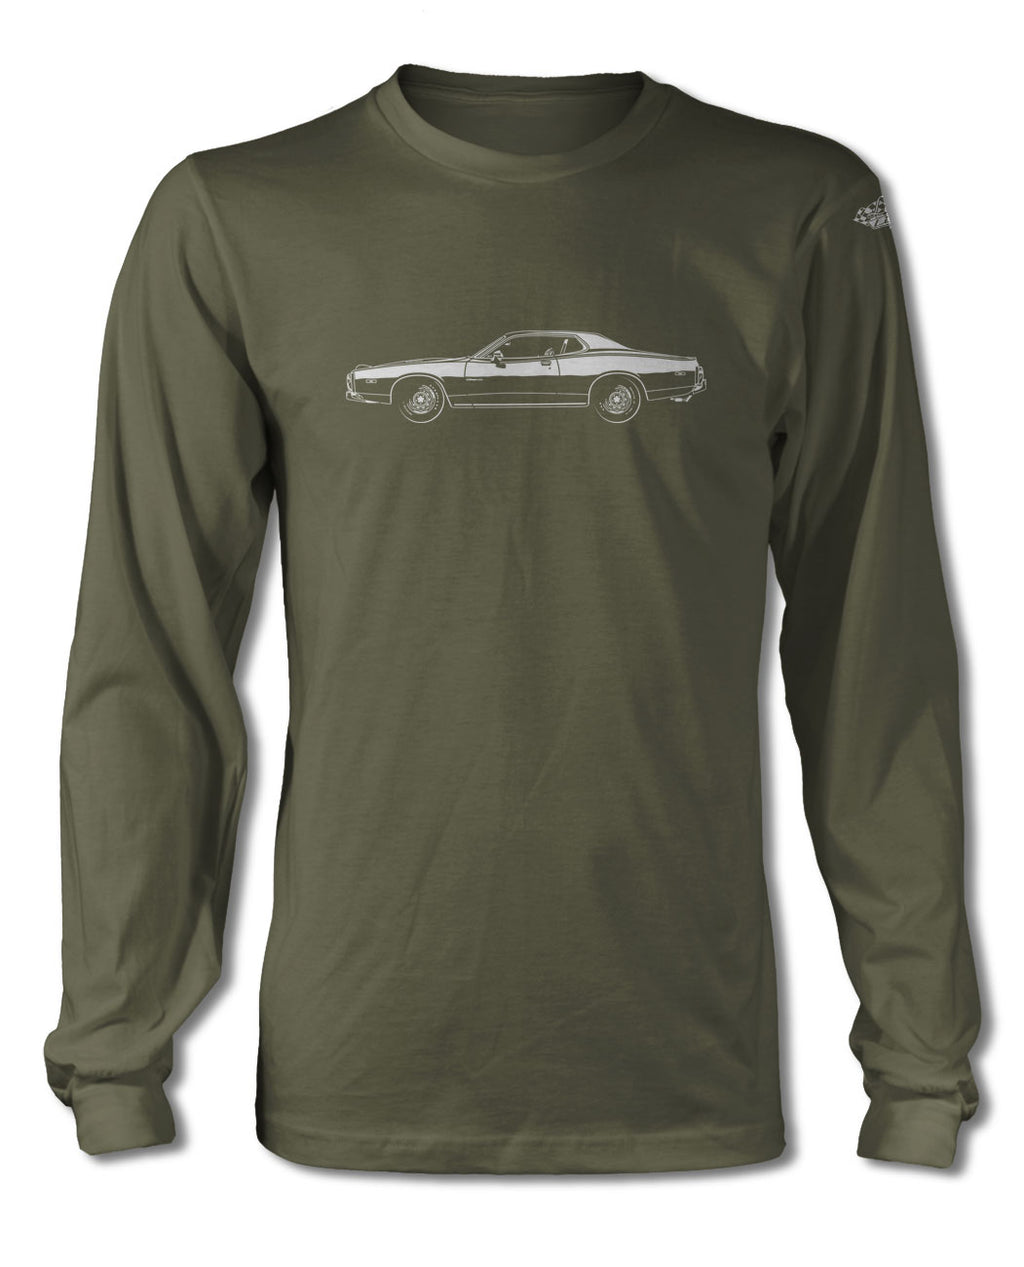 1973 Dodge Charger Rallye 440 Magnum Coupe T-Shirt - Long Sleeves - Side View